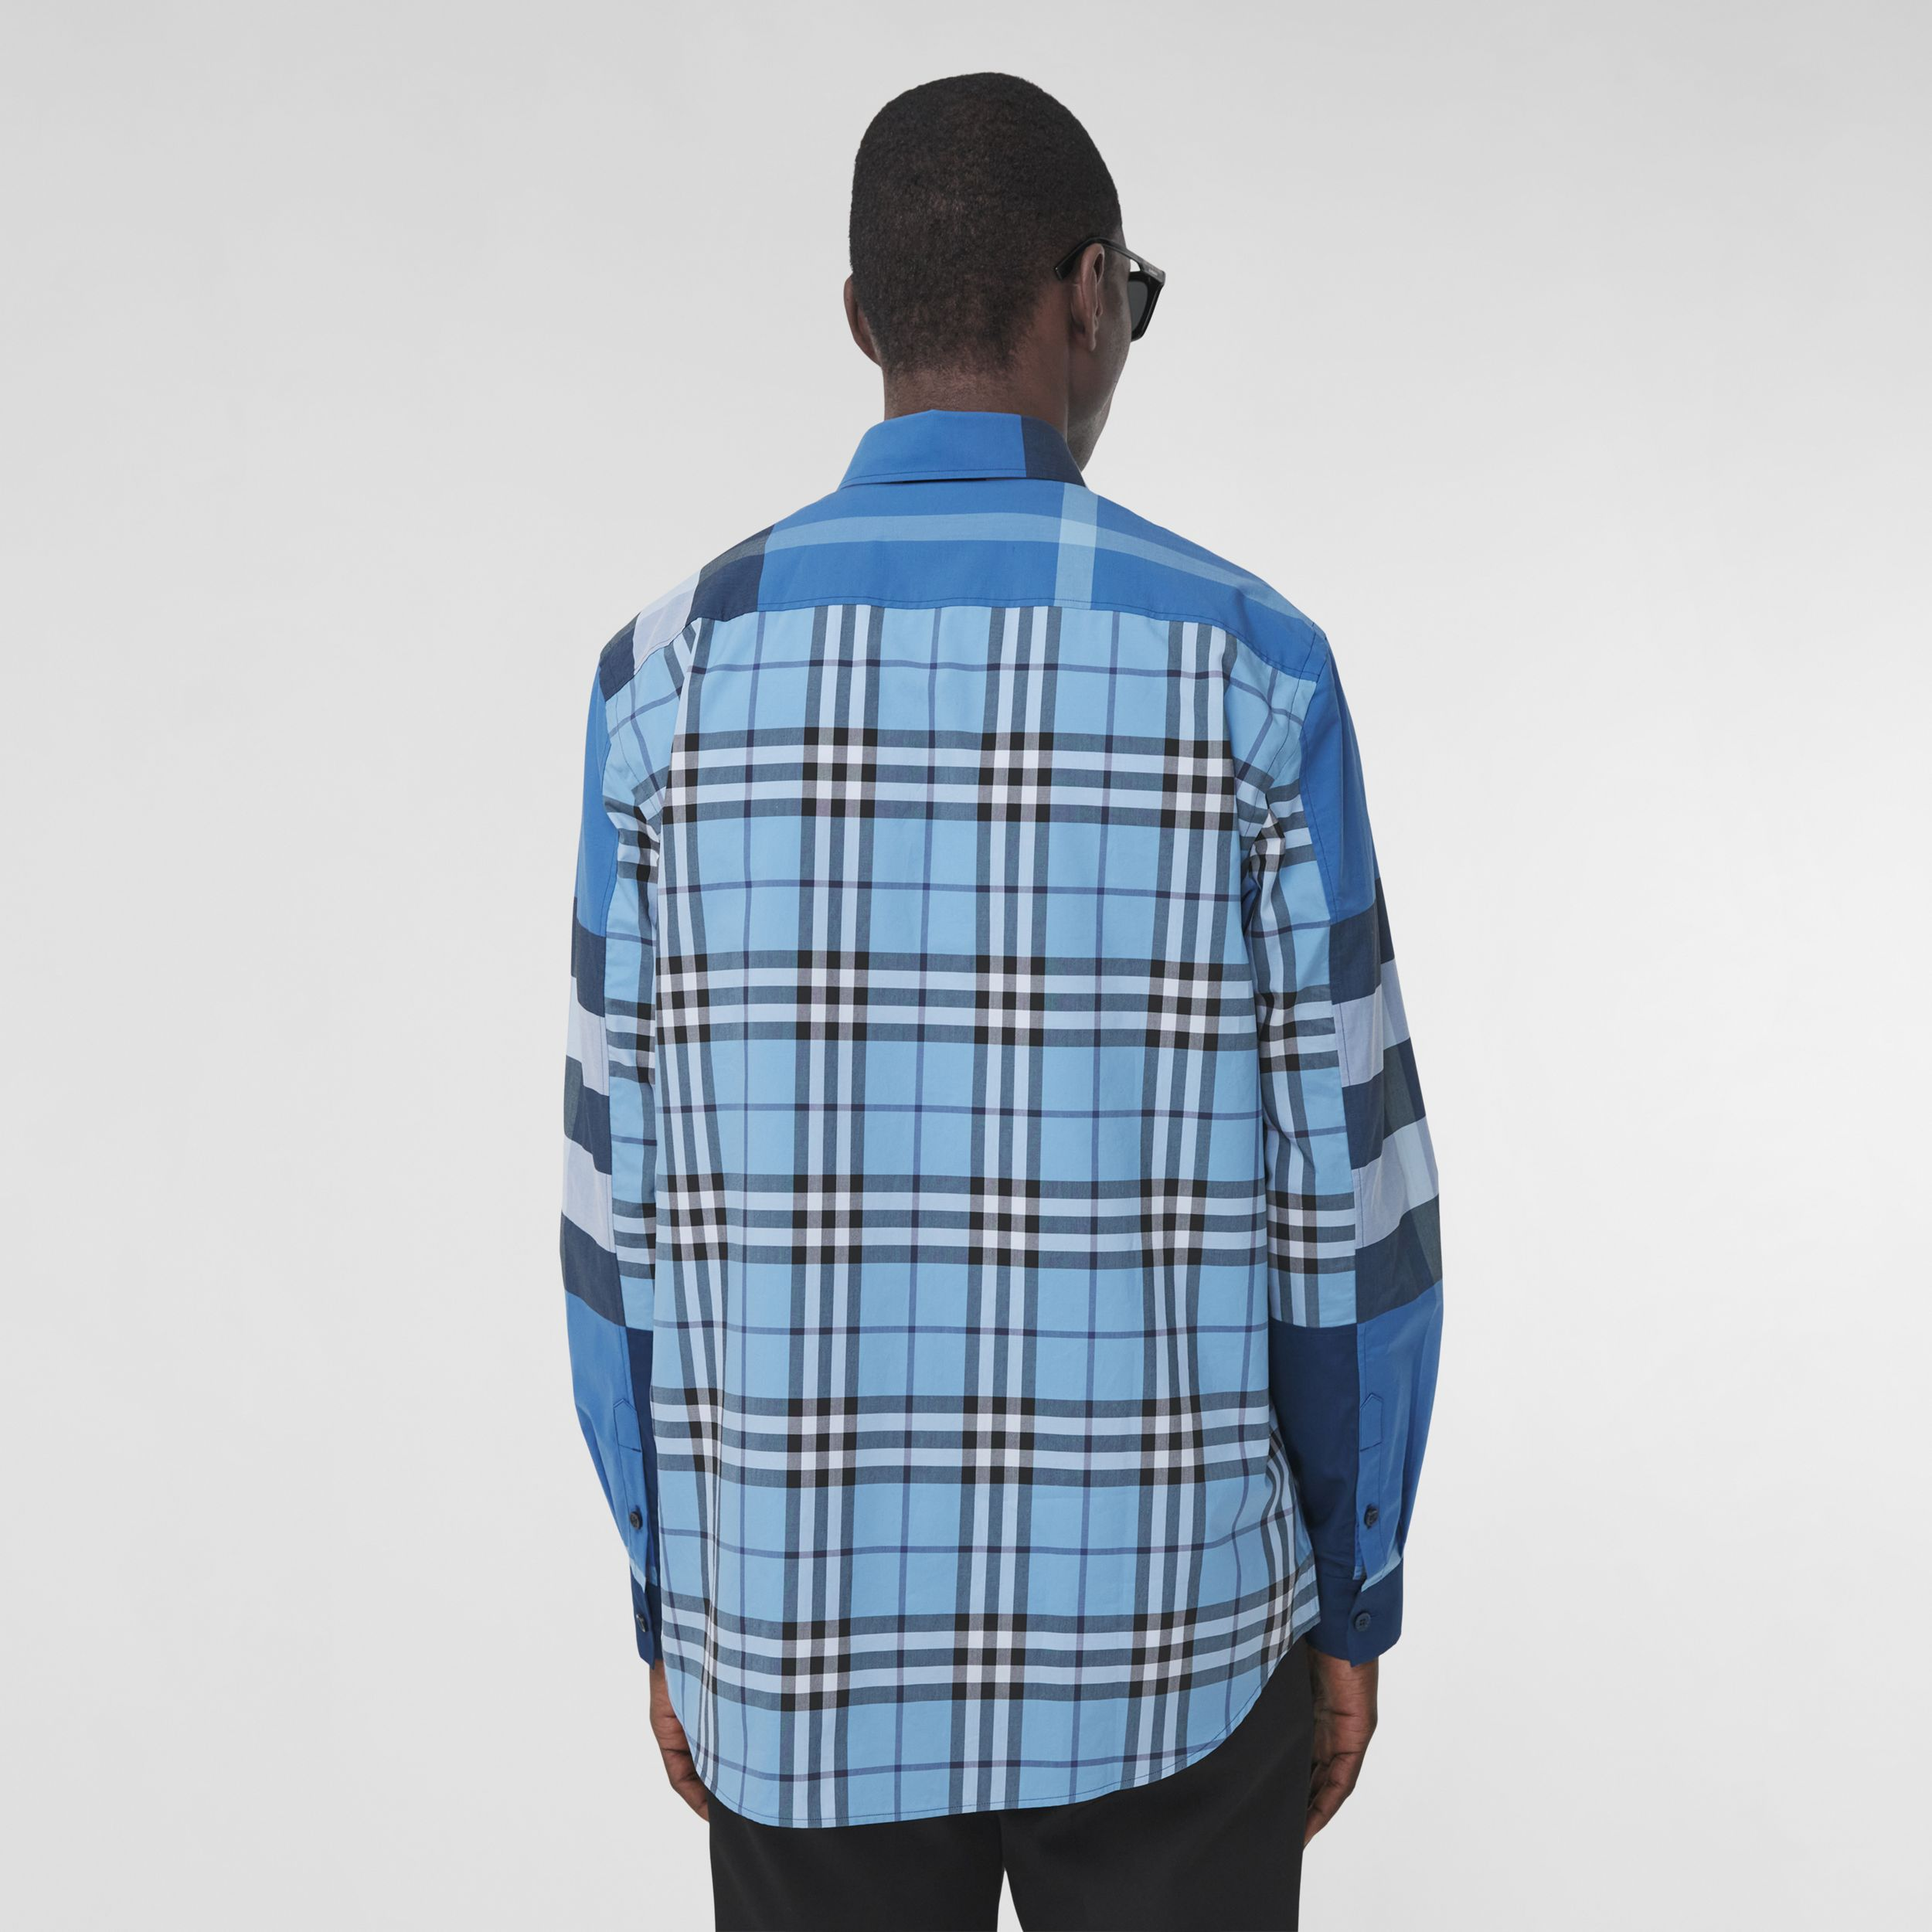 Patchwork Check Cotton Poplin Shirt in Vivid Cobalt - Men | Burberry United Kingdom - 3